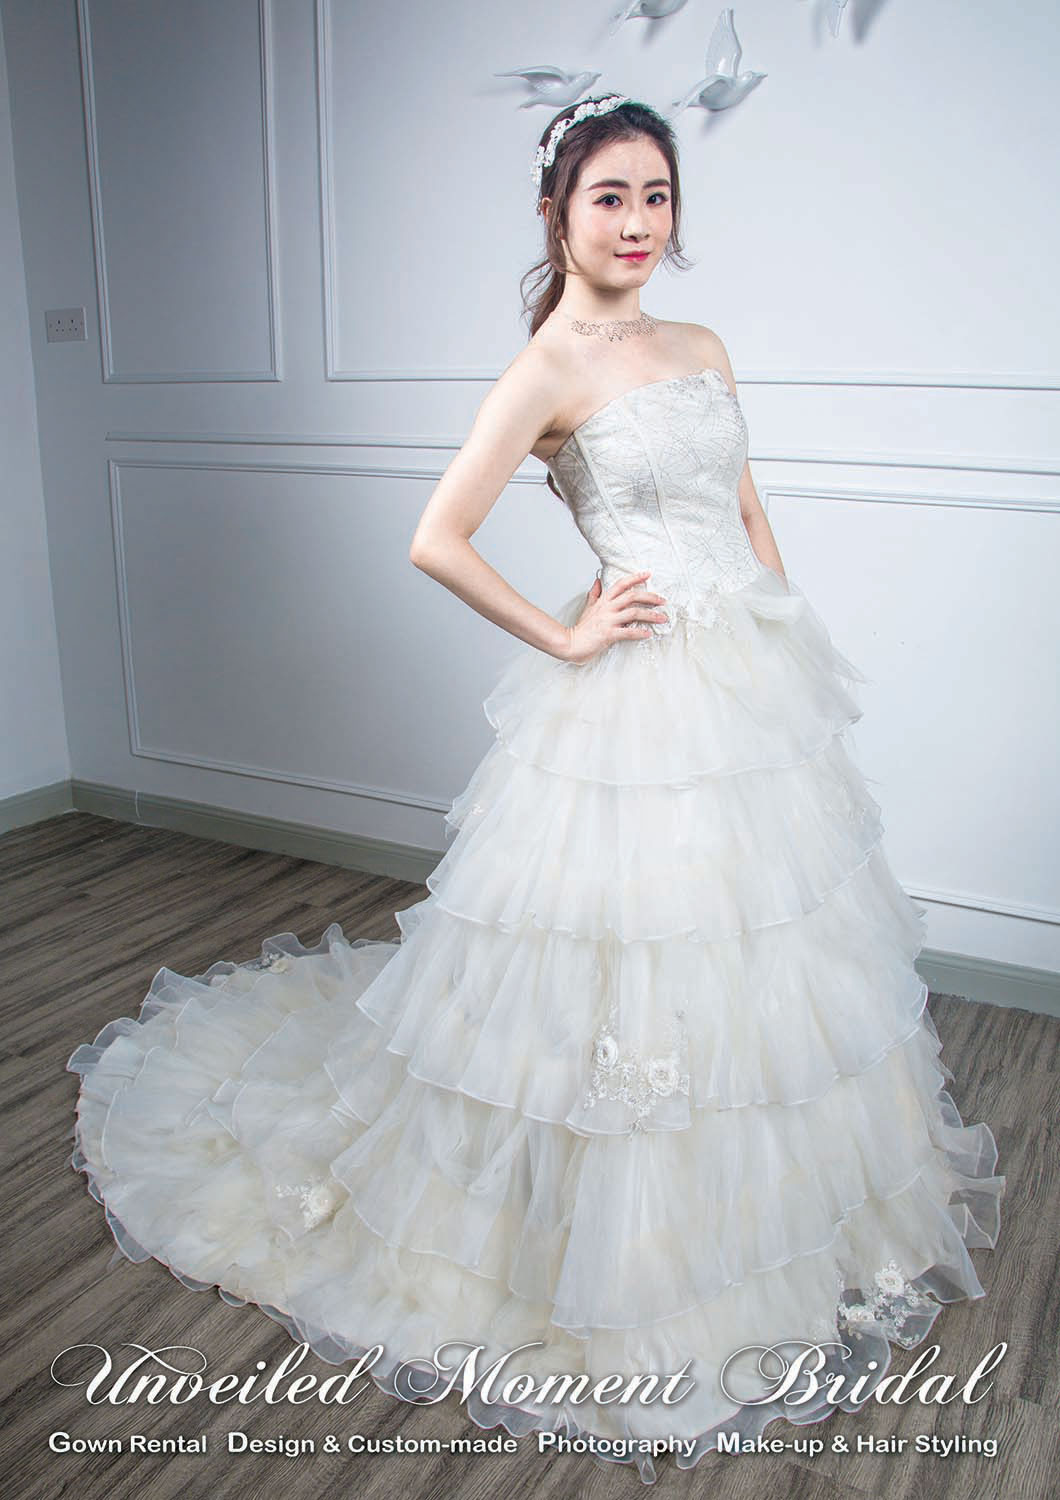 Corset-style wedding gown with layers of tulle and lightly beaded organza, and a court train 緊束上身, 多層紗配以釘珠玻璃紗, 小拖尾婚紗